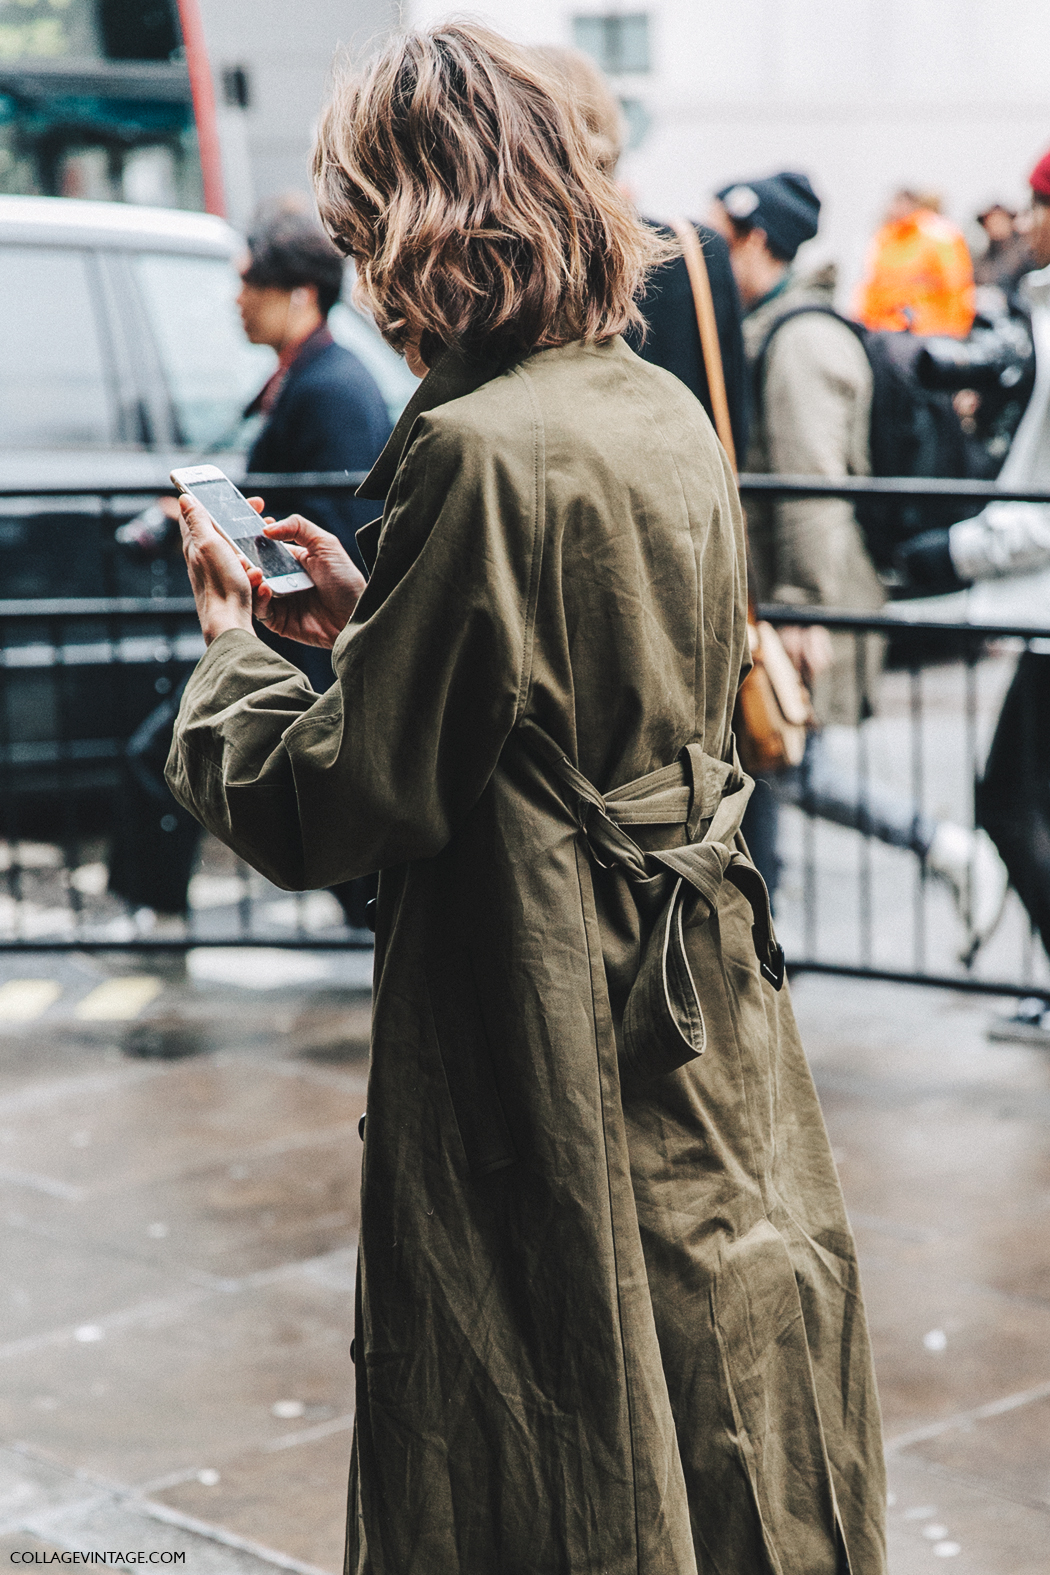 LFW-London_Fashion_Week_Fall_16-Street_Style-Collage_Vintage-Alexa_Chung-Trench_Coat-Cowboy_Boots-Erdem-Lace_Dress-15